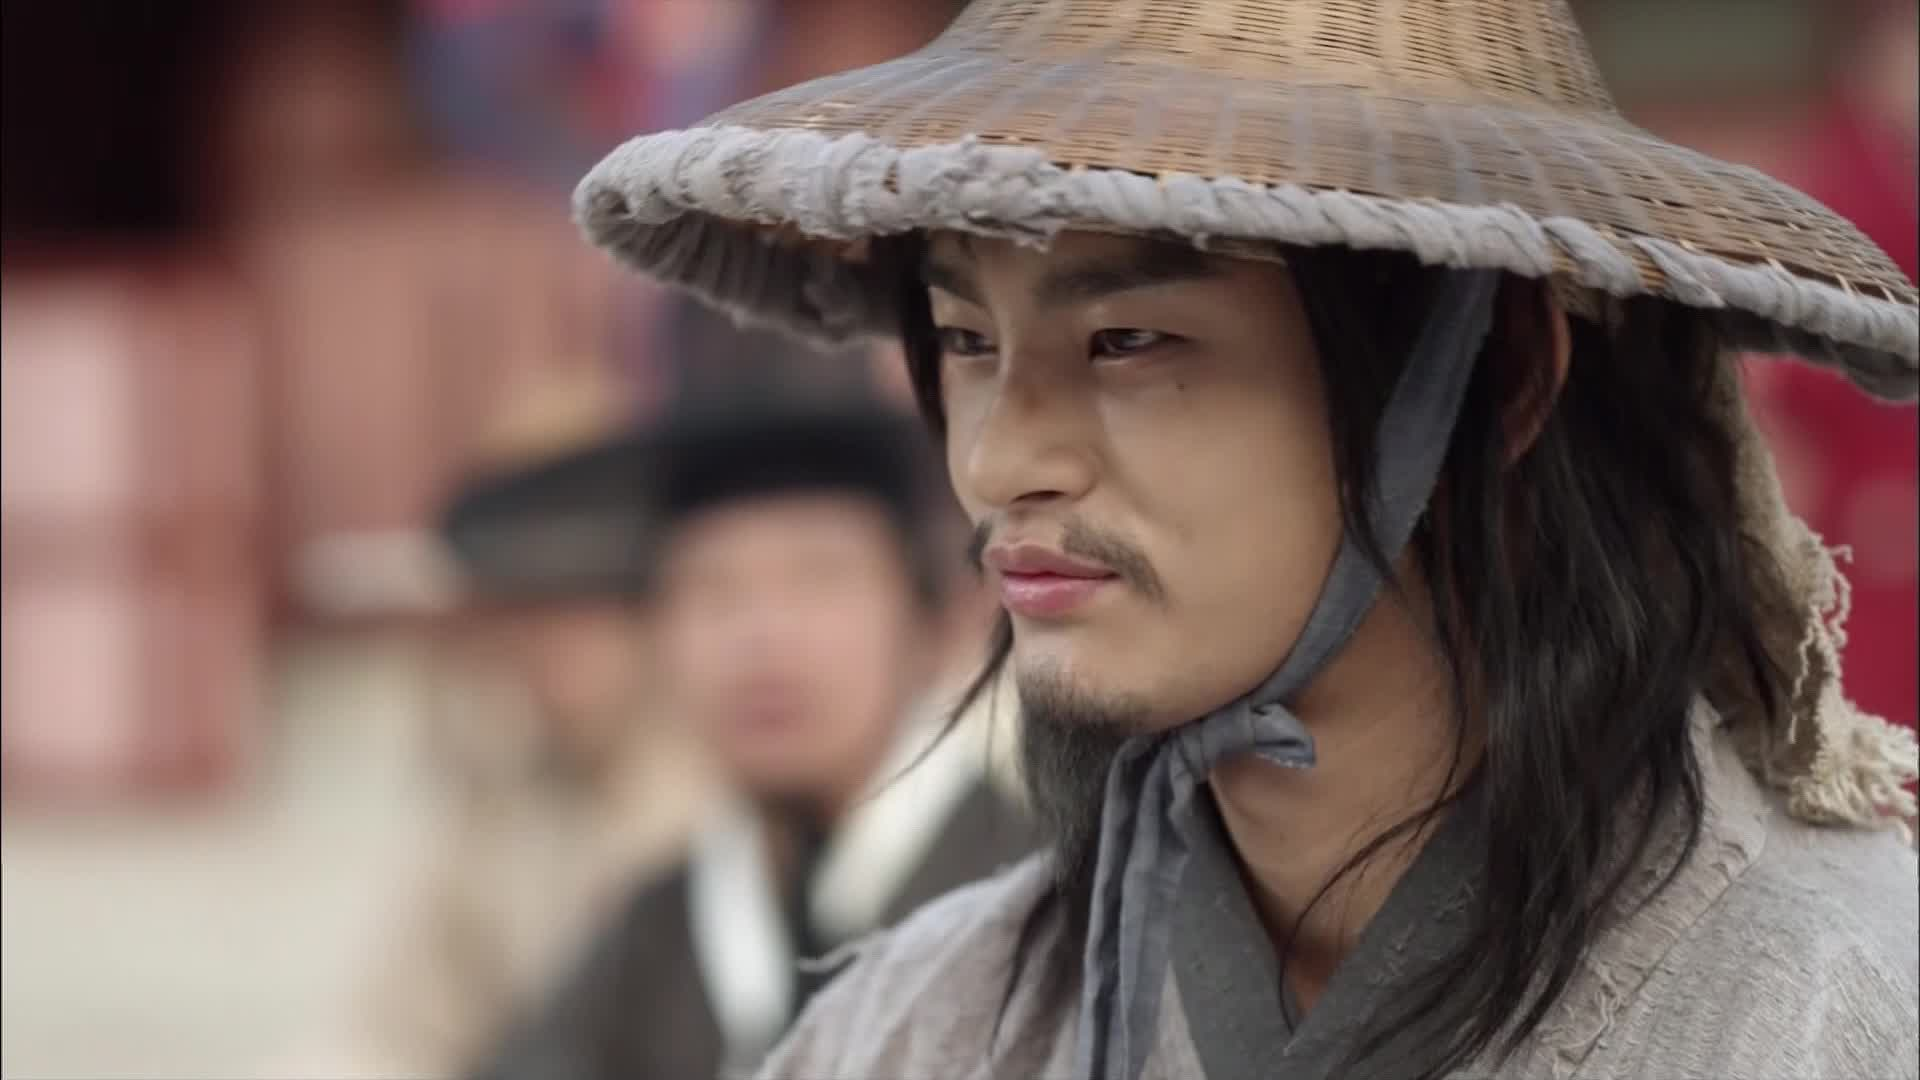 The King's Face Episode 5